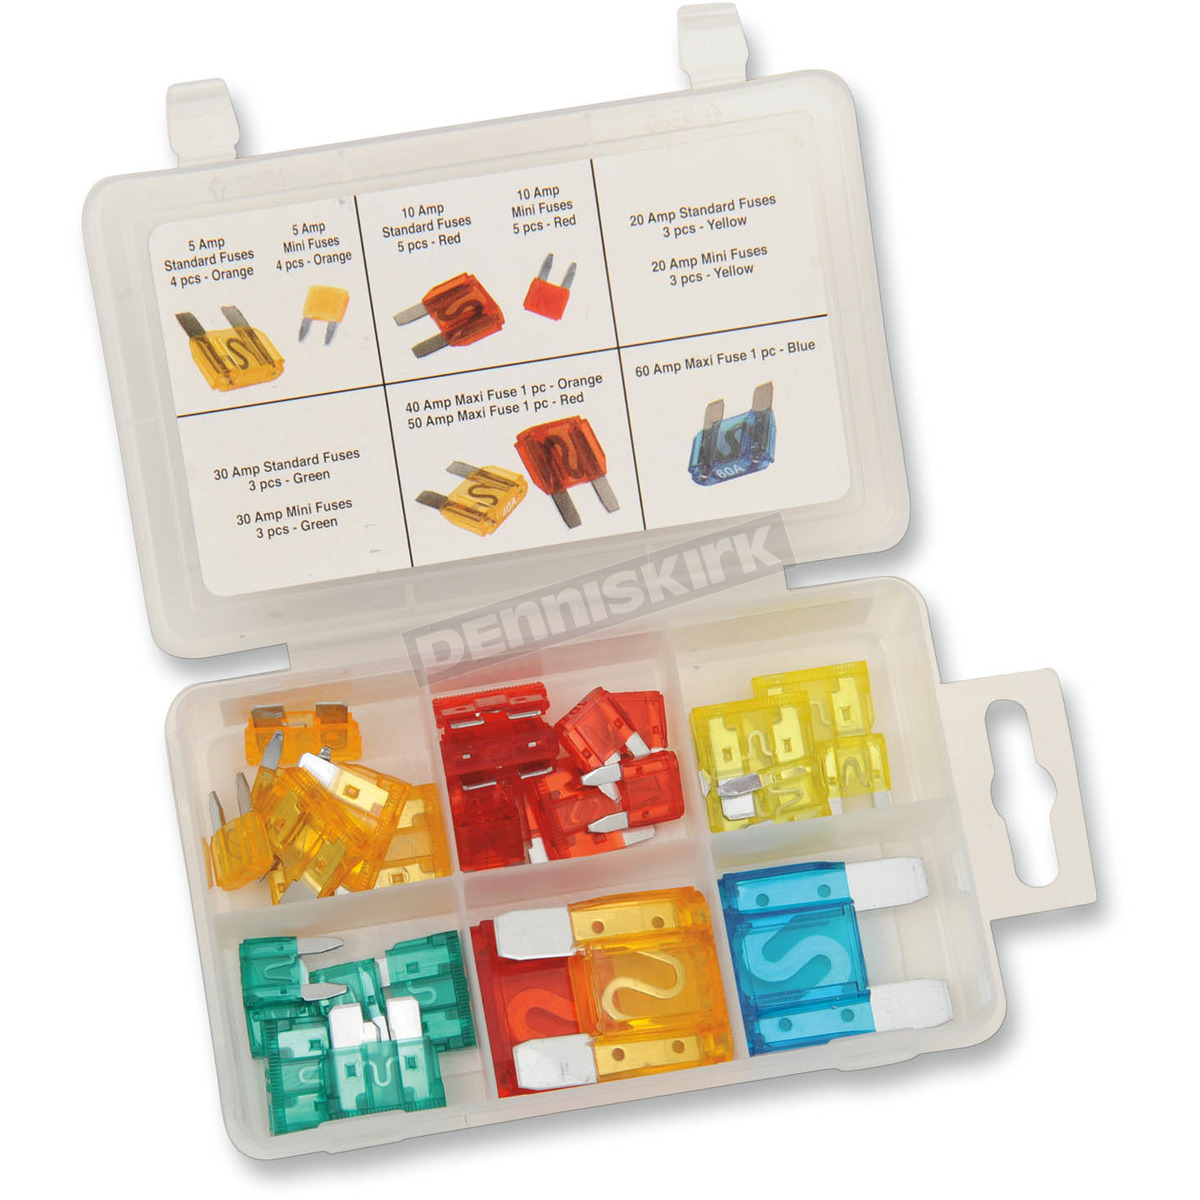 Performance Tool 33-Piece Master Fuse ortment - W5370 Harley ... on mercedes benz fuses, victory motorcycle fuses, lexus fuses, ford fuses, bmw fuses, harley sportster fuses, john deere fuses,